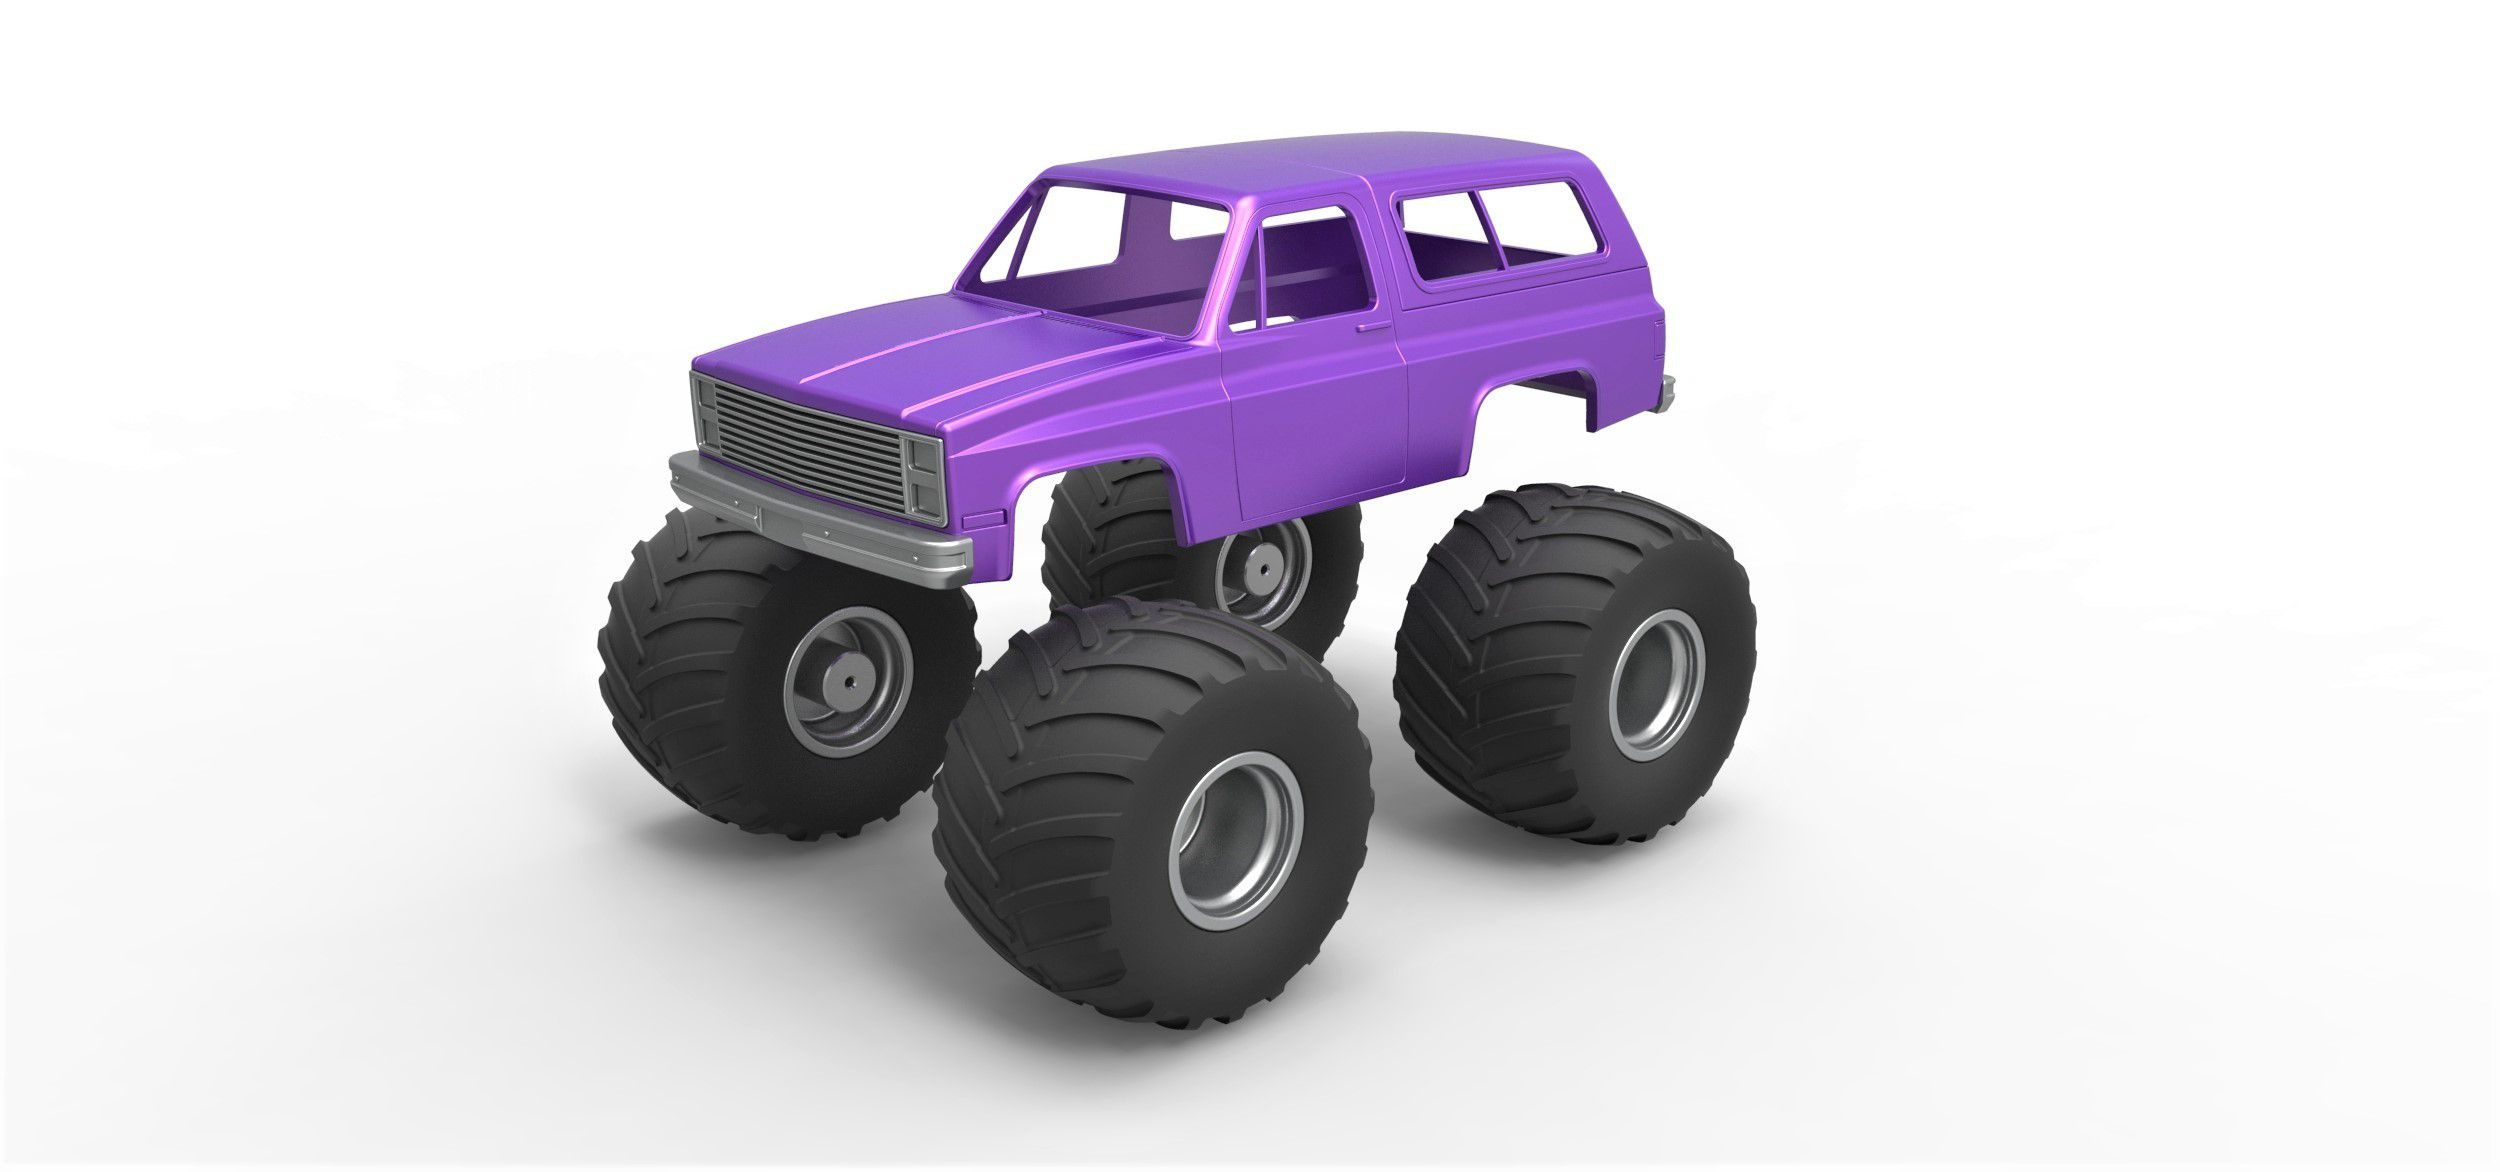 1.jpg Download STL file Diecast shell and wheels 1988 Chevrolet Blazer K5 monster truck Scale 1 to 25 • 3D printing design, CosplayItemsRock